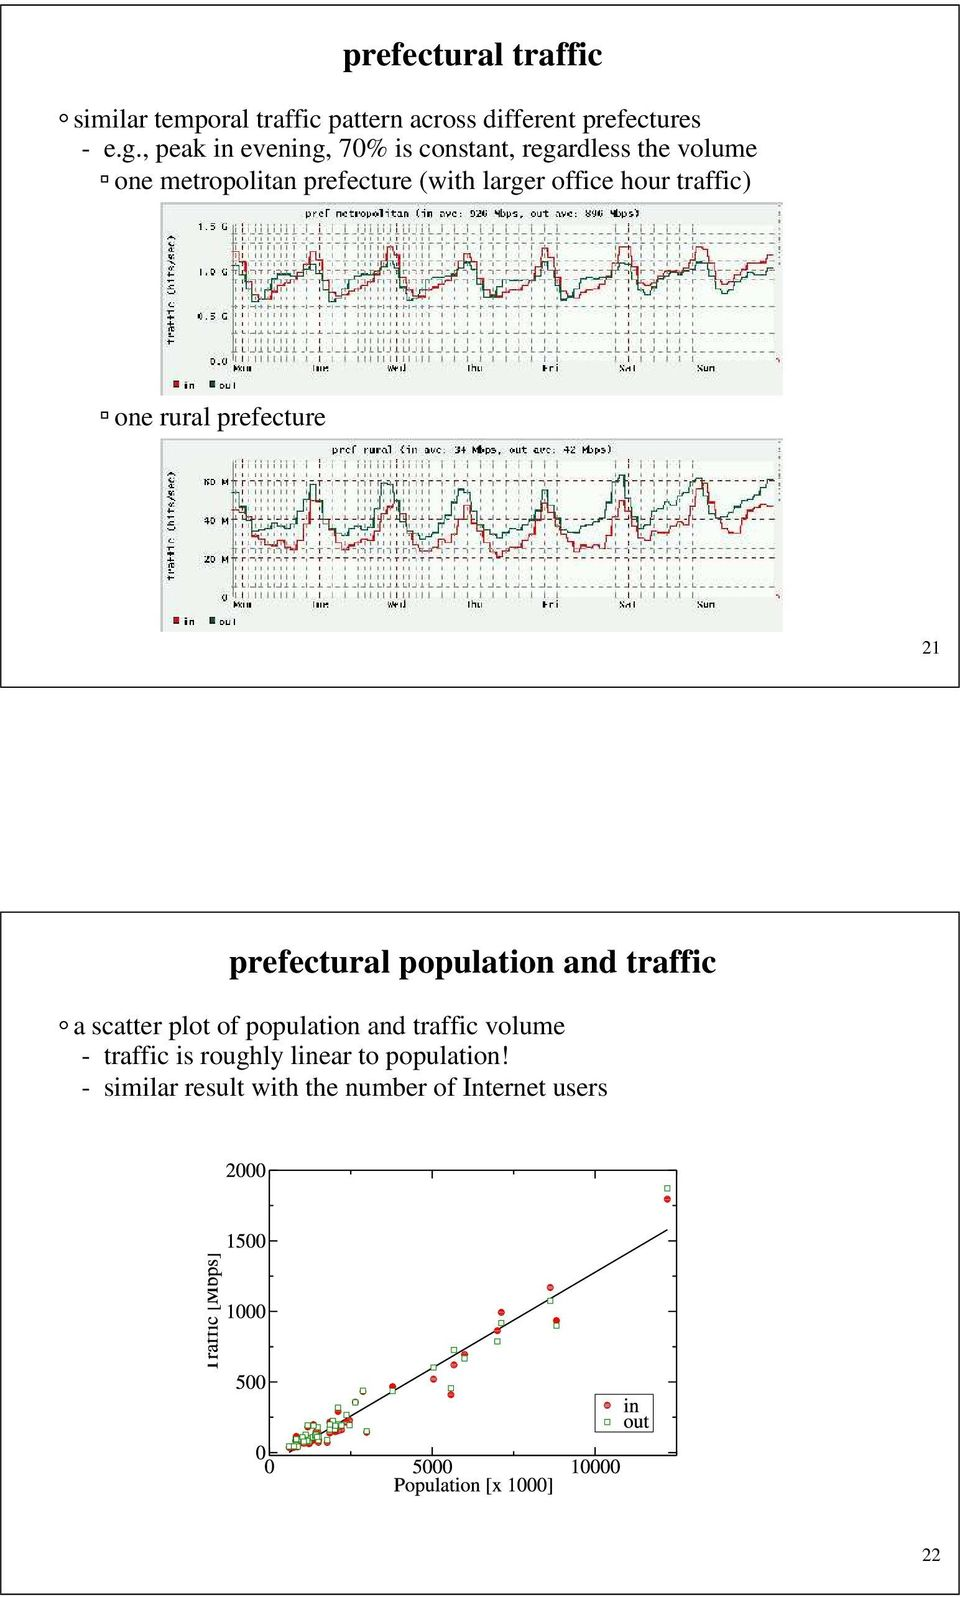 office hour traffic) one rural prefecture 21 prefectural population and traffic a scatter plot of